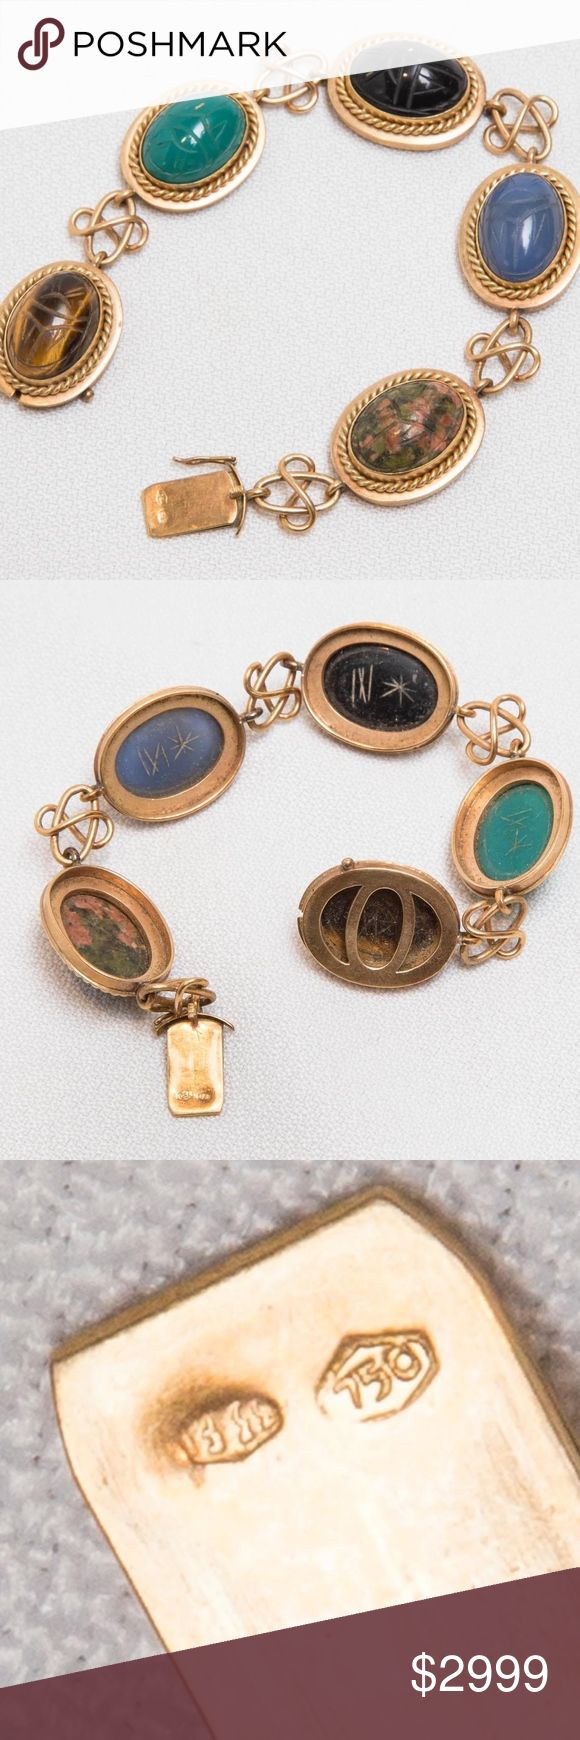 """Vintage 18K Gold Scarab Bracelet Knot Like Links in great condition hand made 25 dwt gross weight 18K gold, tested  measures 7-1/2"""" long Jewelry Bracelets"""